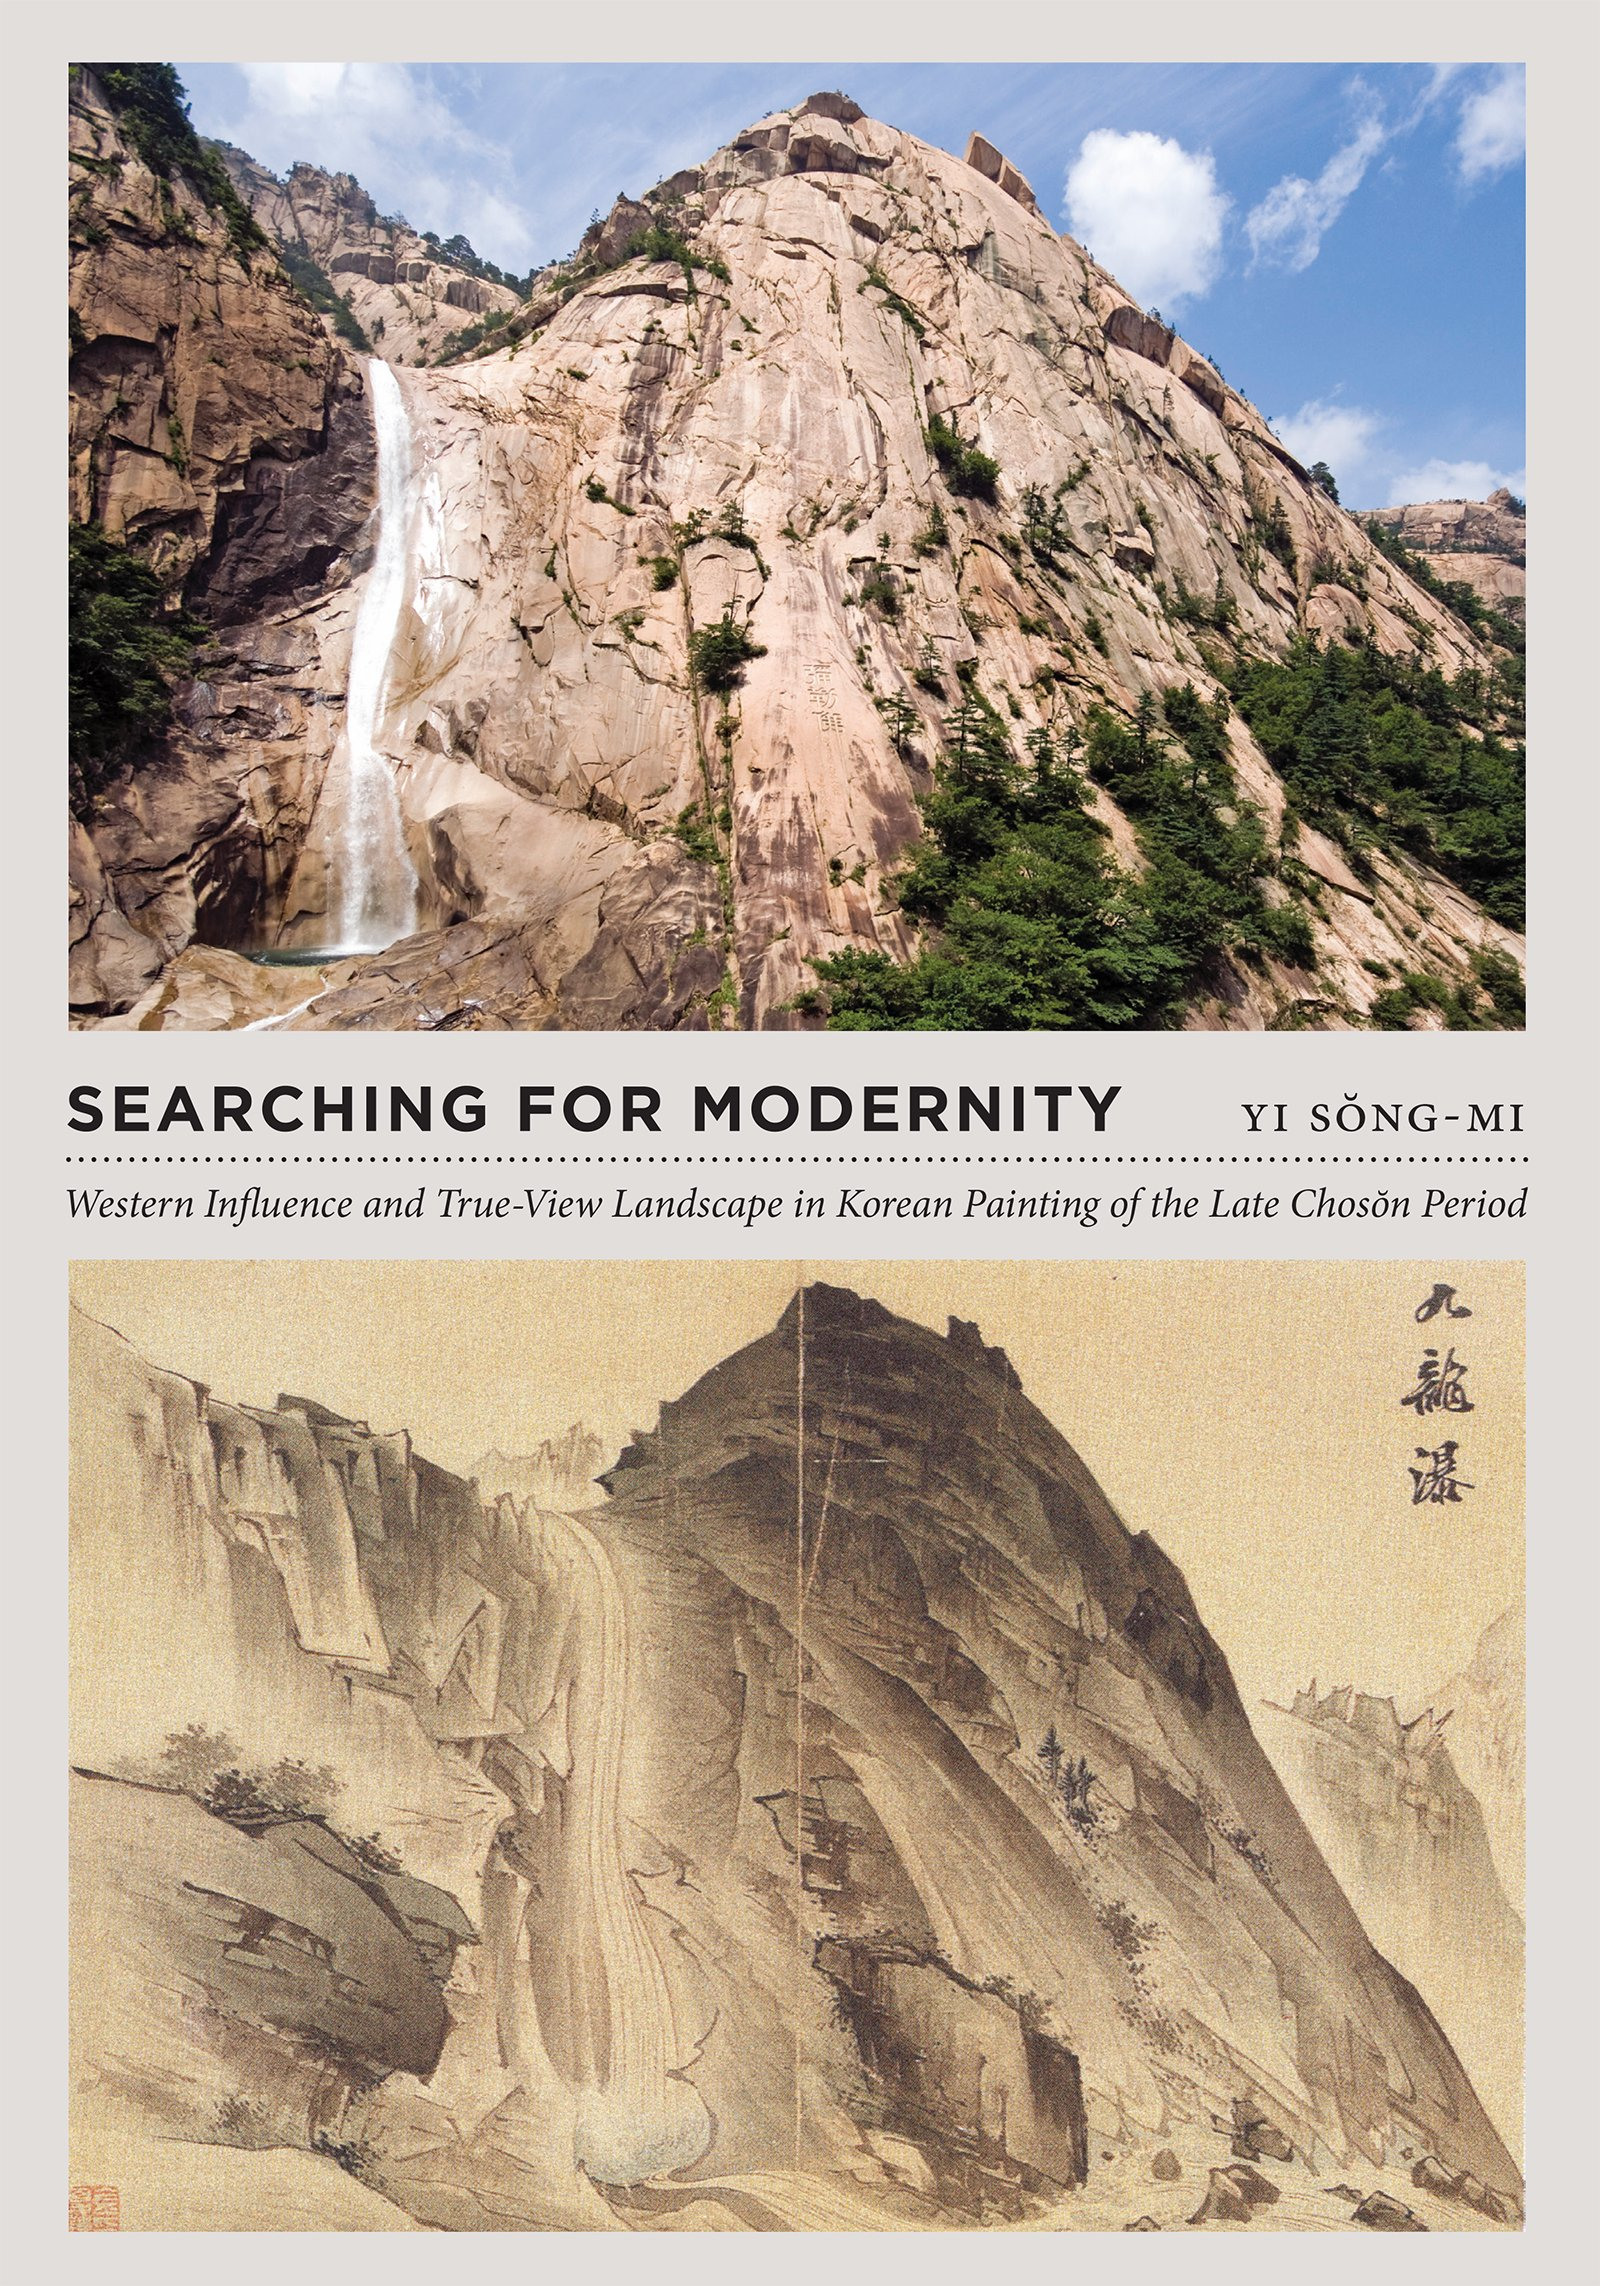 Searching for Modernity: Western Influence and True-View Landscape in Korean Painting of the Late Choson Period (Franklin D. Murphy Lecture)